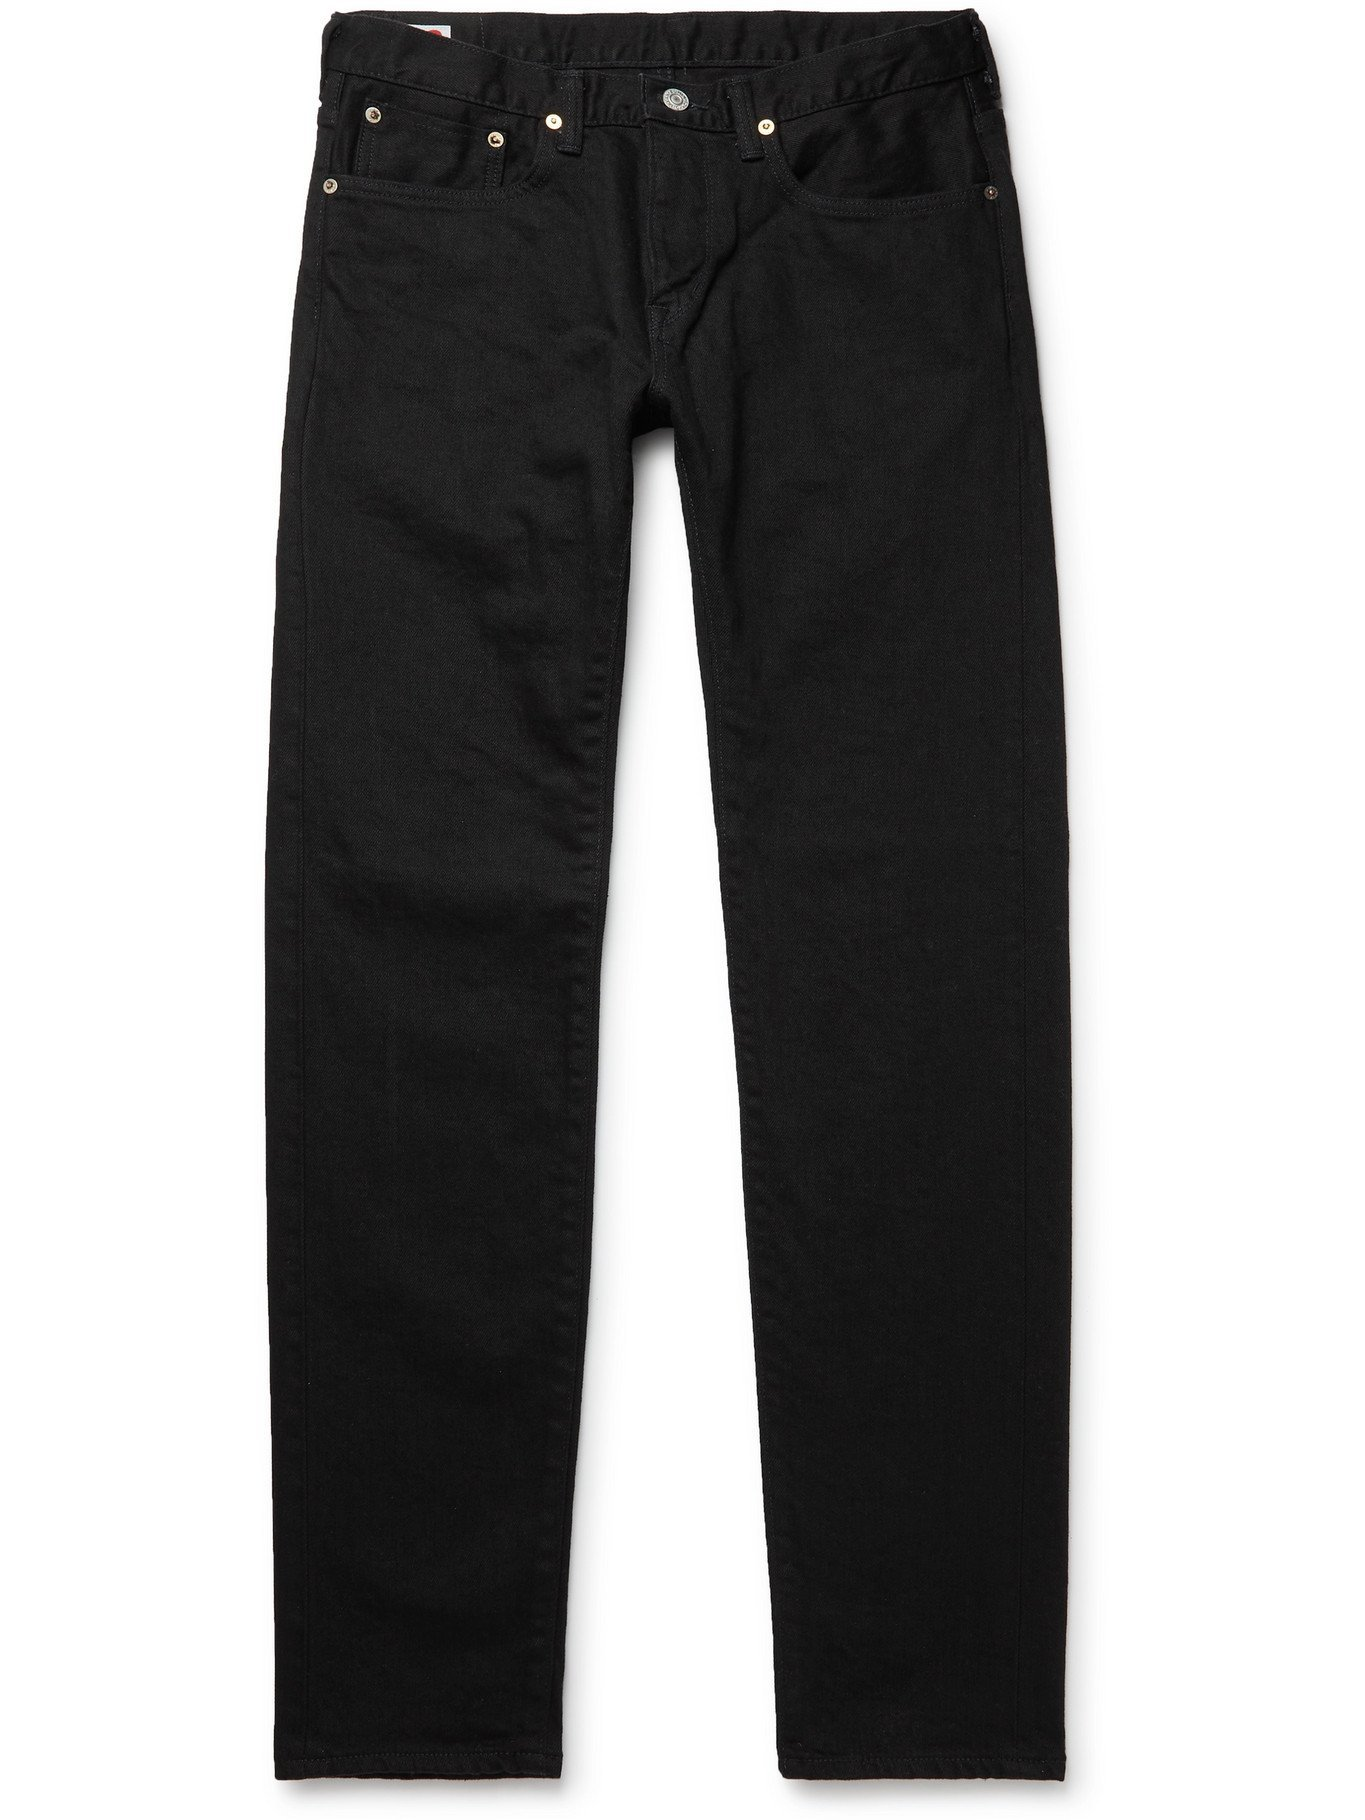 Photo: EDWIN - Kaihara Slim-Fit Tapered Selvedge Denim Jeans - Black - UK/US 30